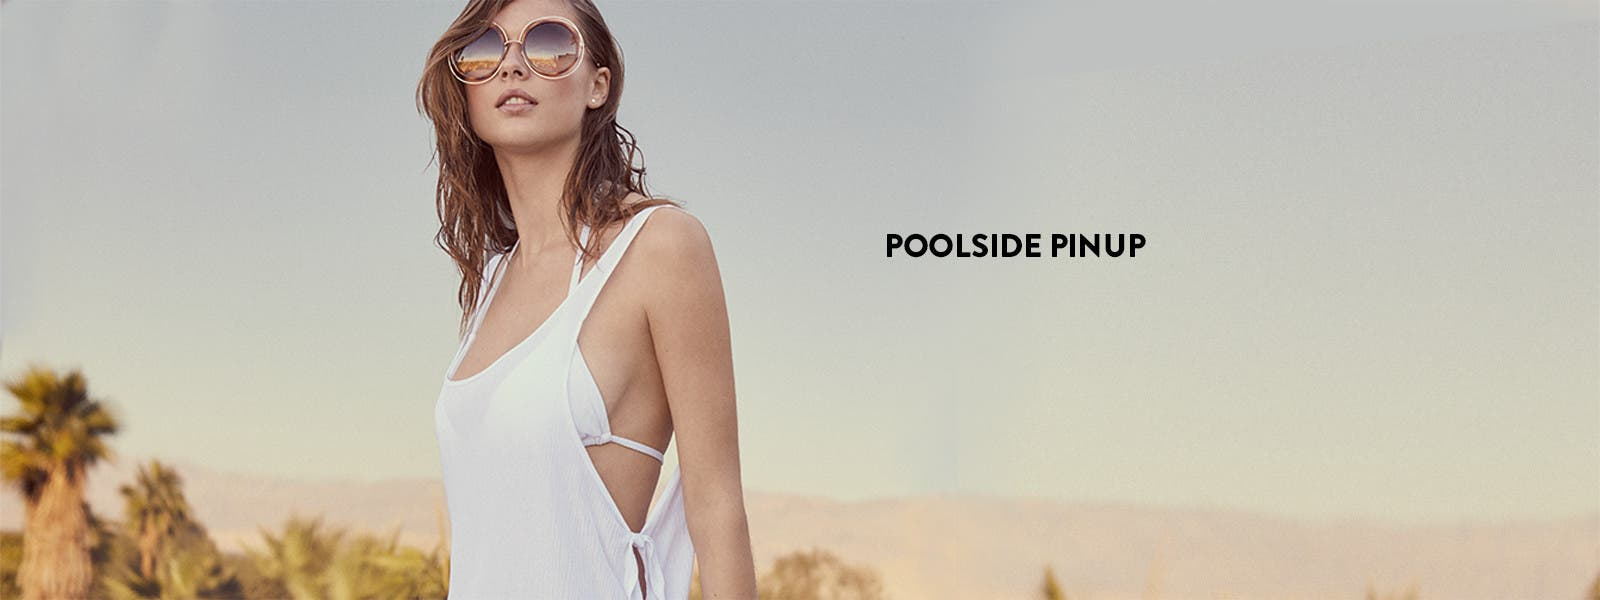 Poolside pinup: vacation swimwear.